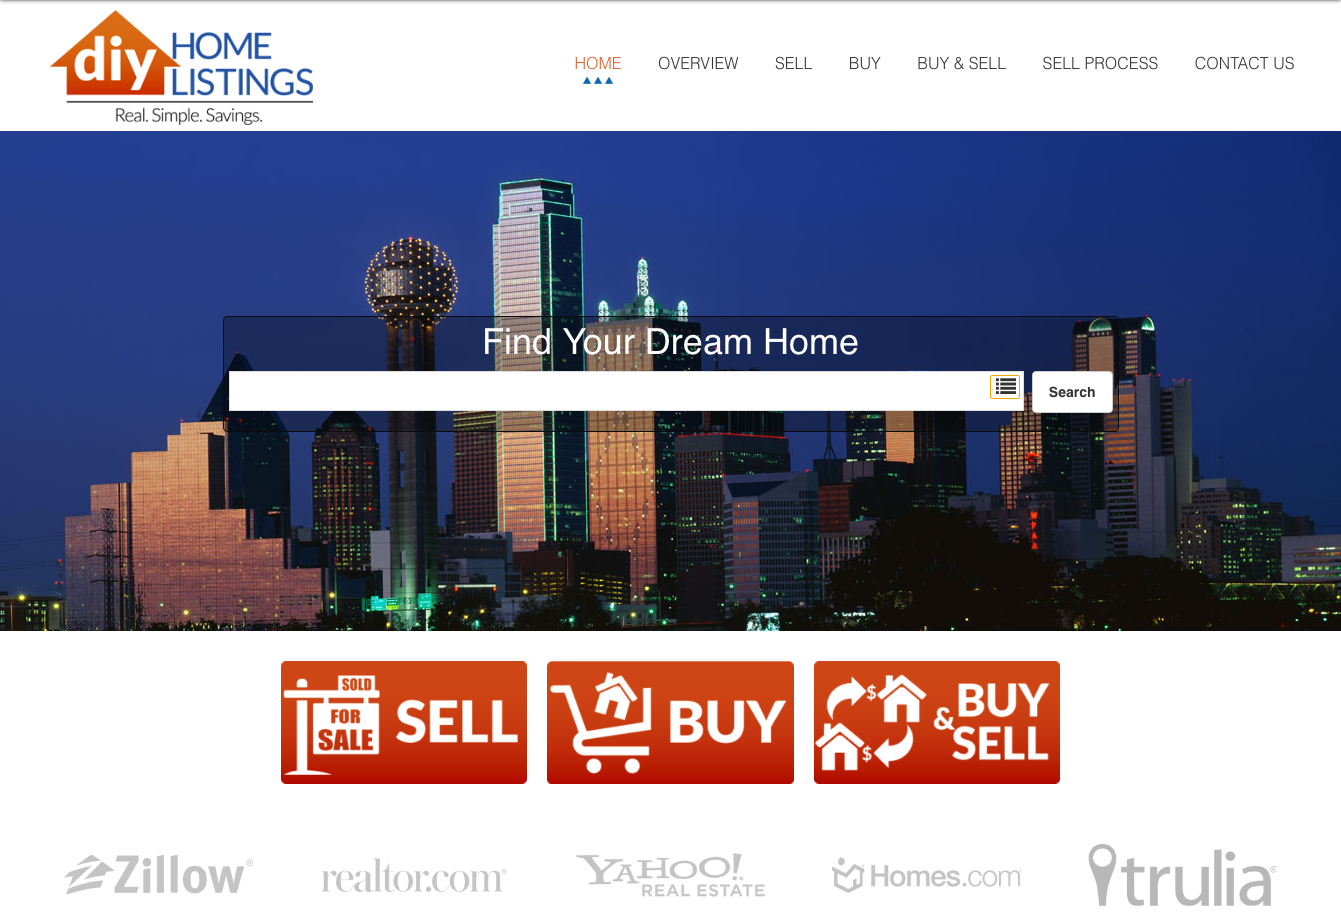 diy homelistings website portfolio web sites cdg marketing a custom real estate website for a regional audience in the austin dallas parts of texas in addition to idx integration it includes custom calculators